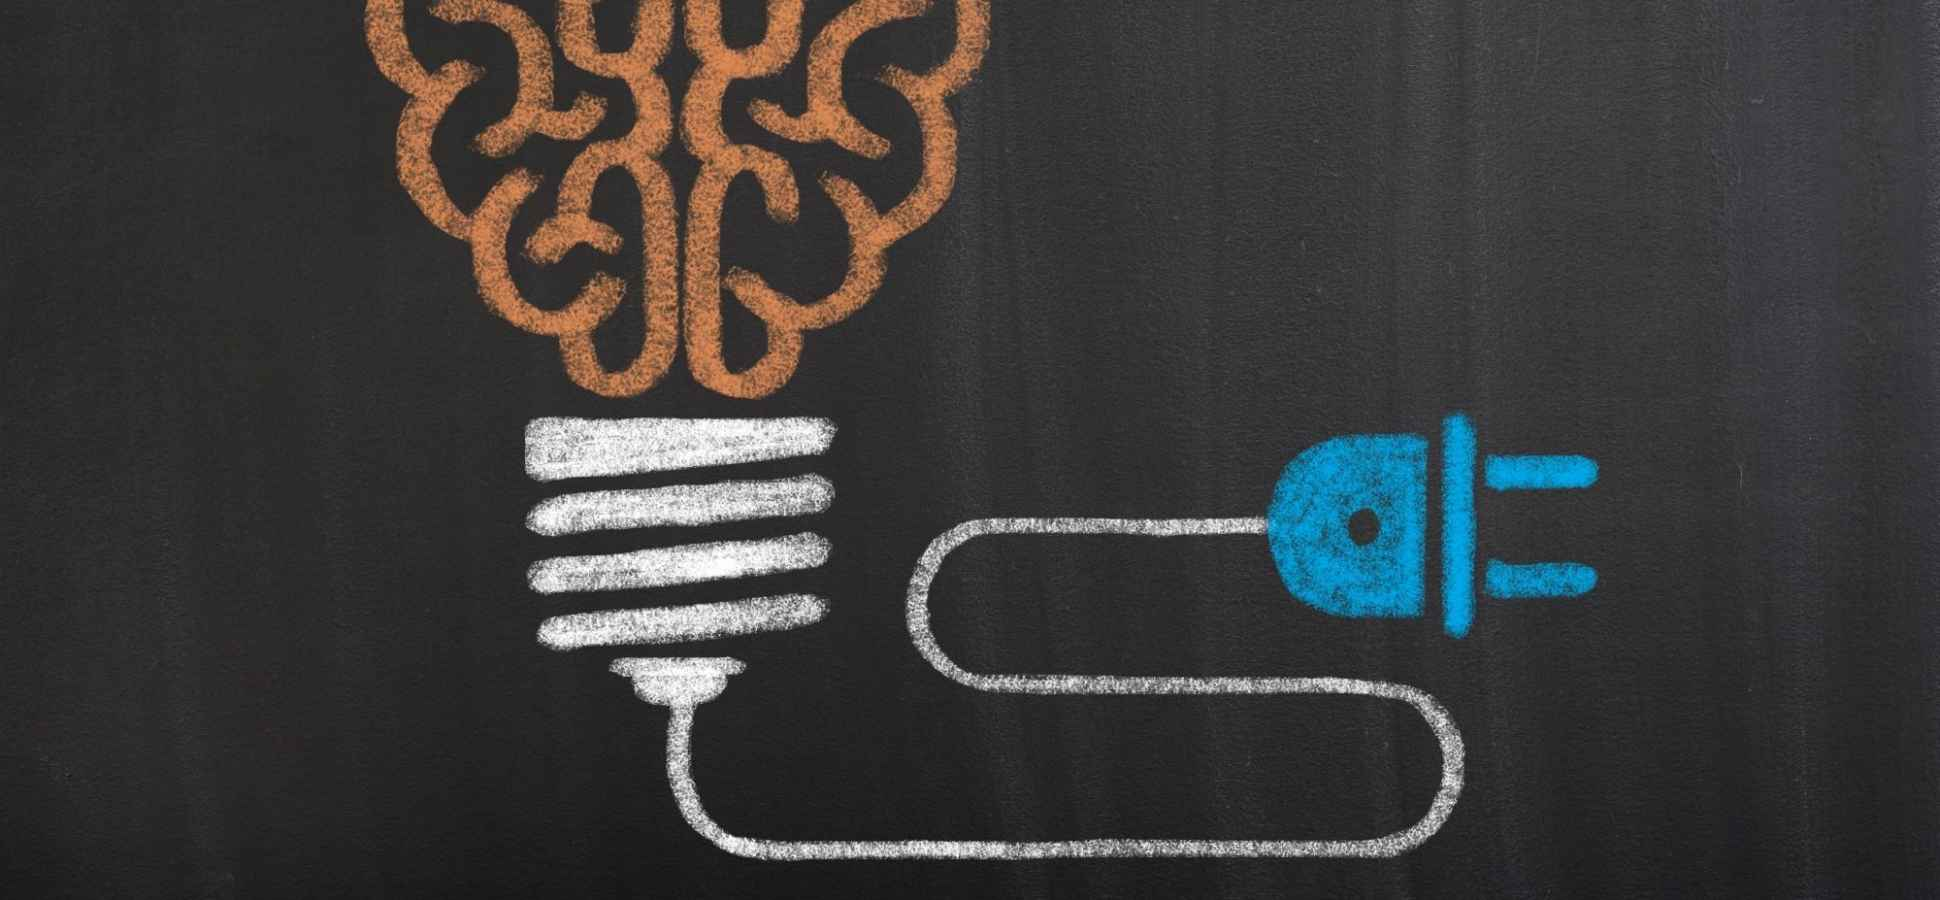 Can You Train Your Brain to Think Like an Entrepreneur? Science Says Yes